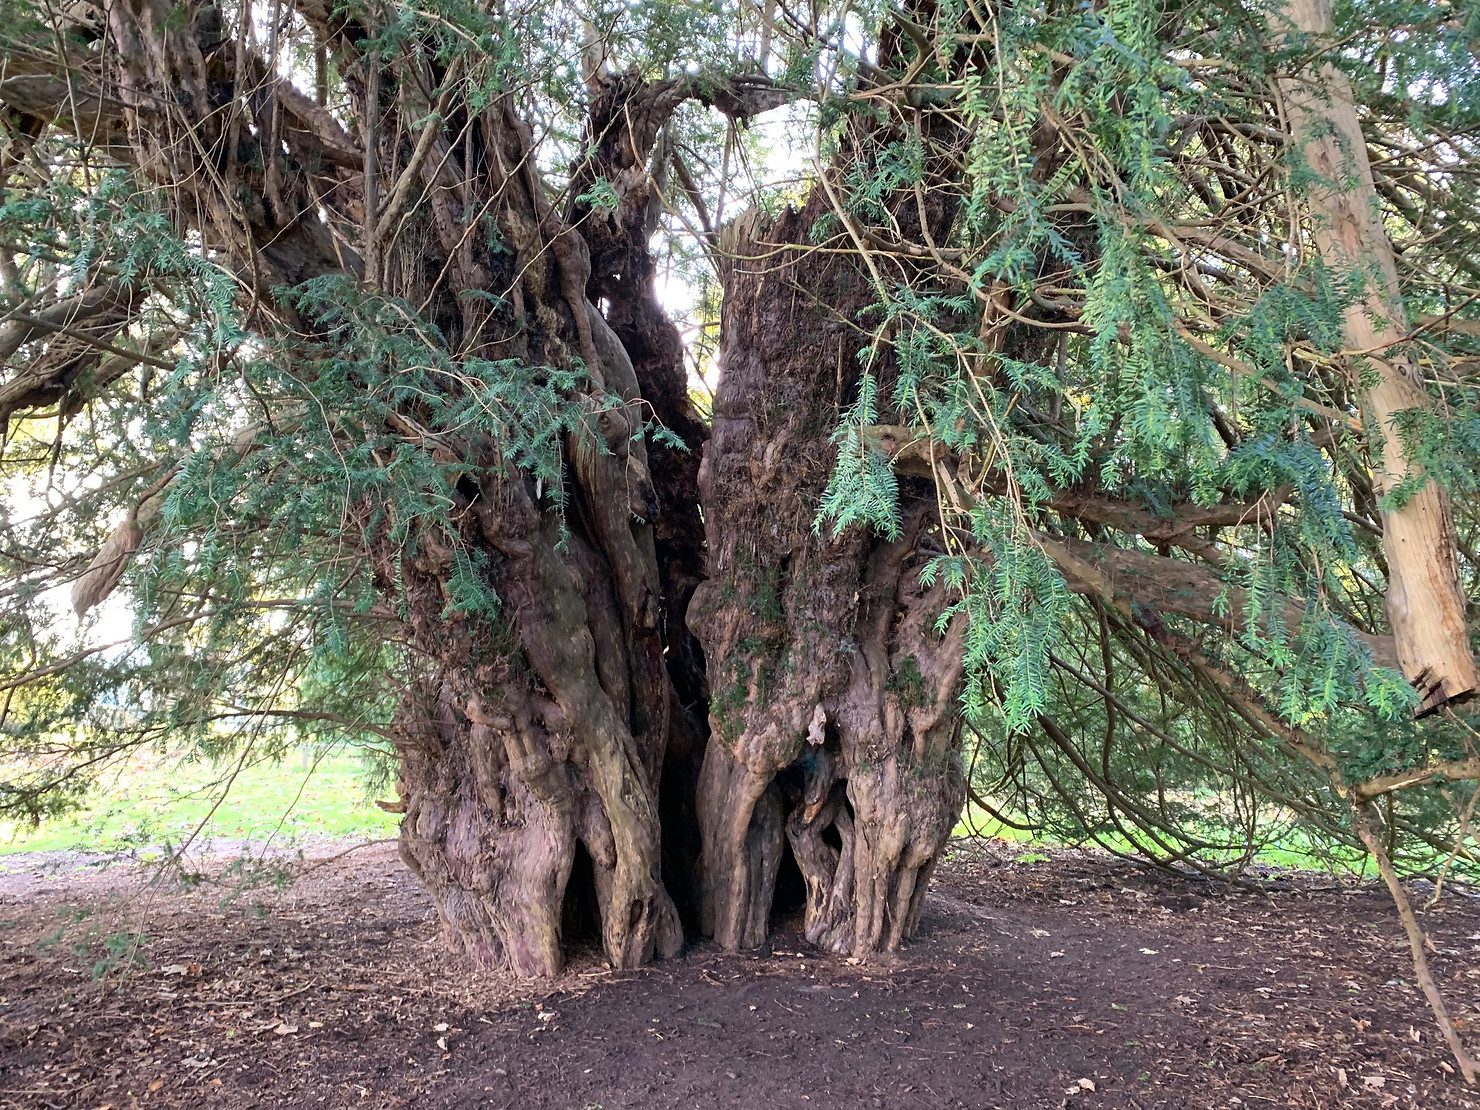 The Ankerwycke Yew - The National Trust's Eldest Tree